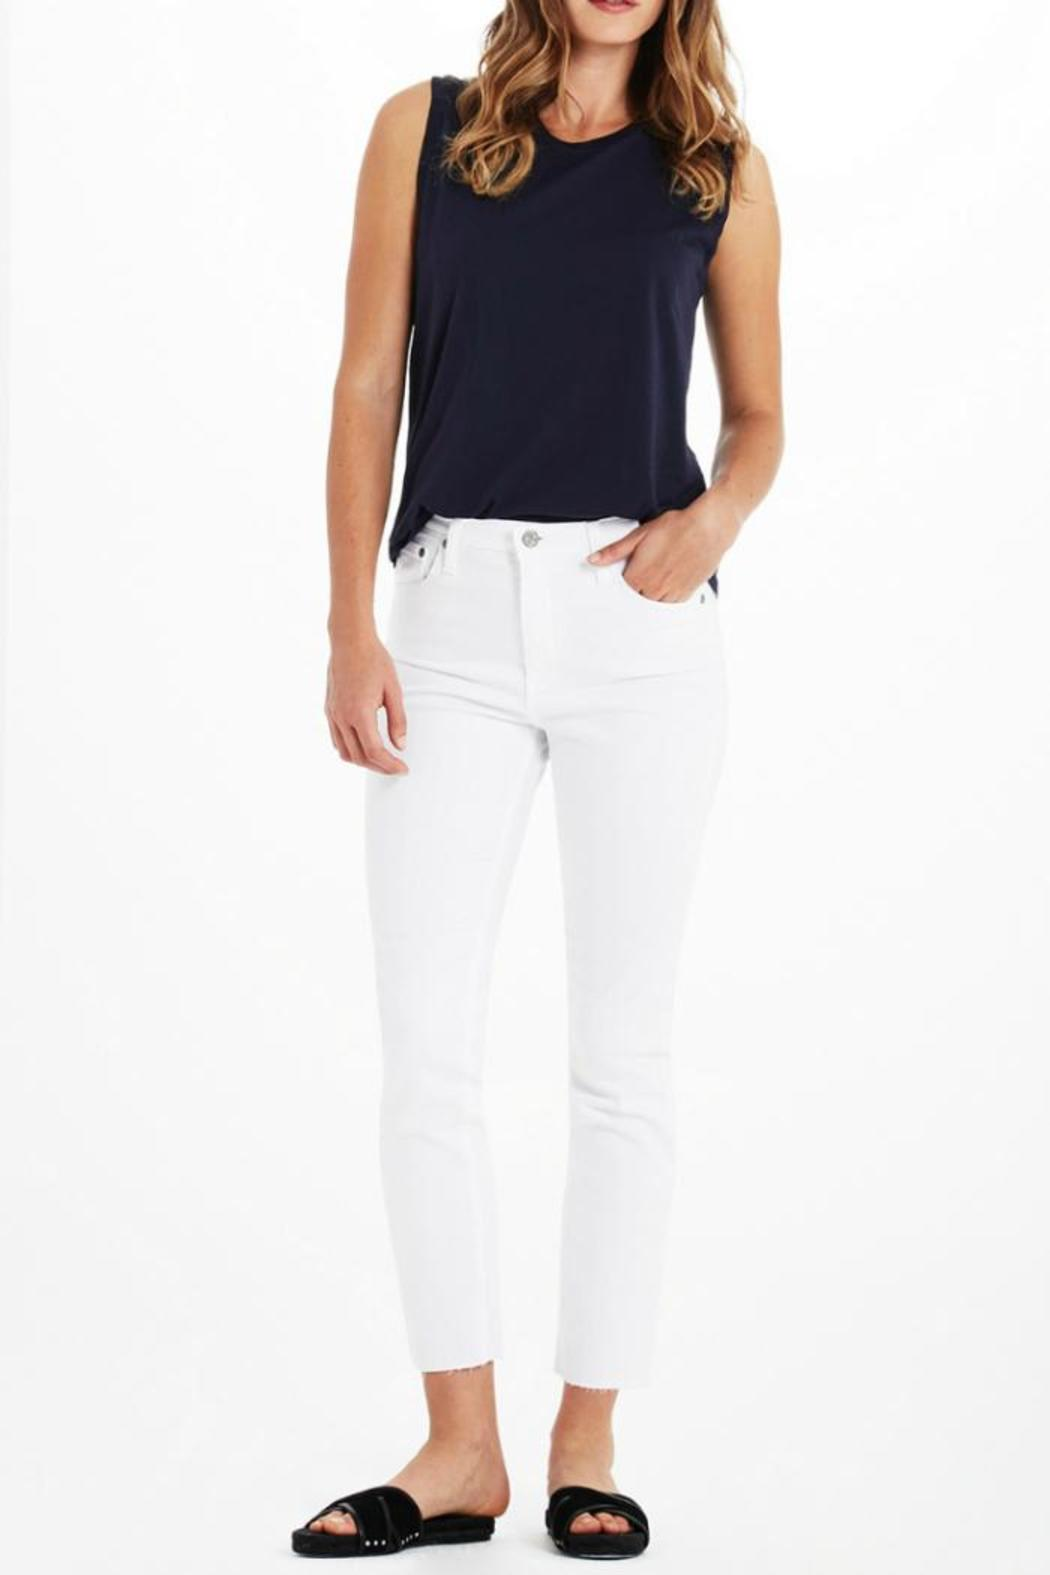 AG Jeans Isabelle White Pants - Main Image